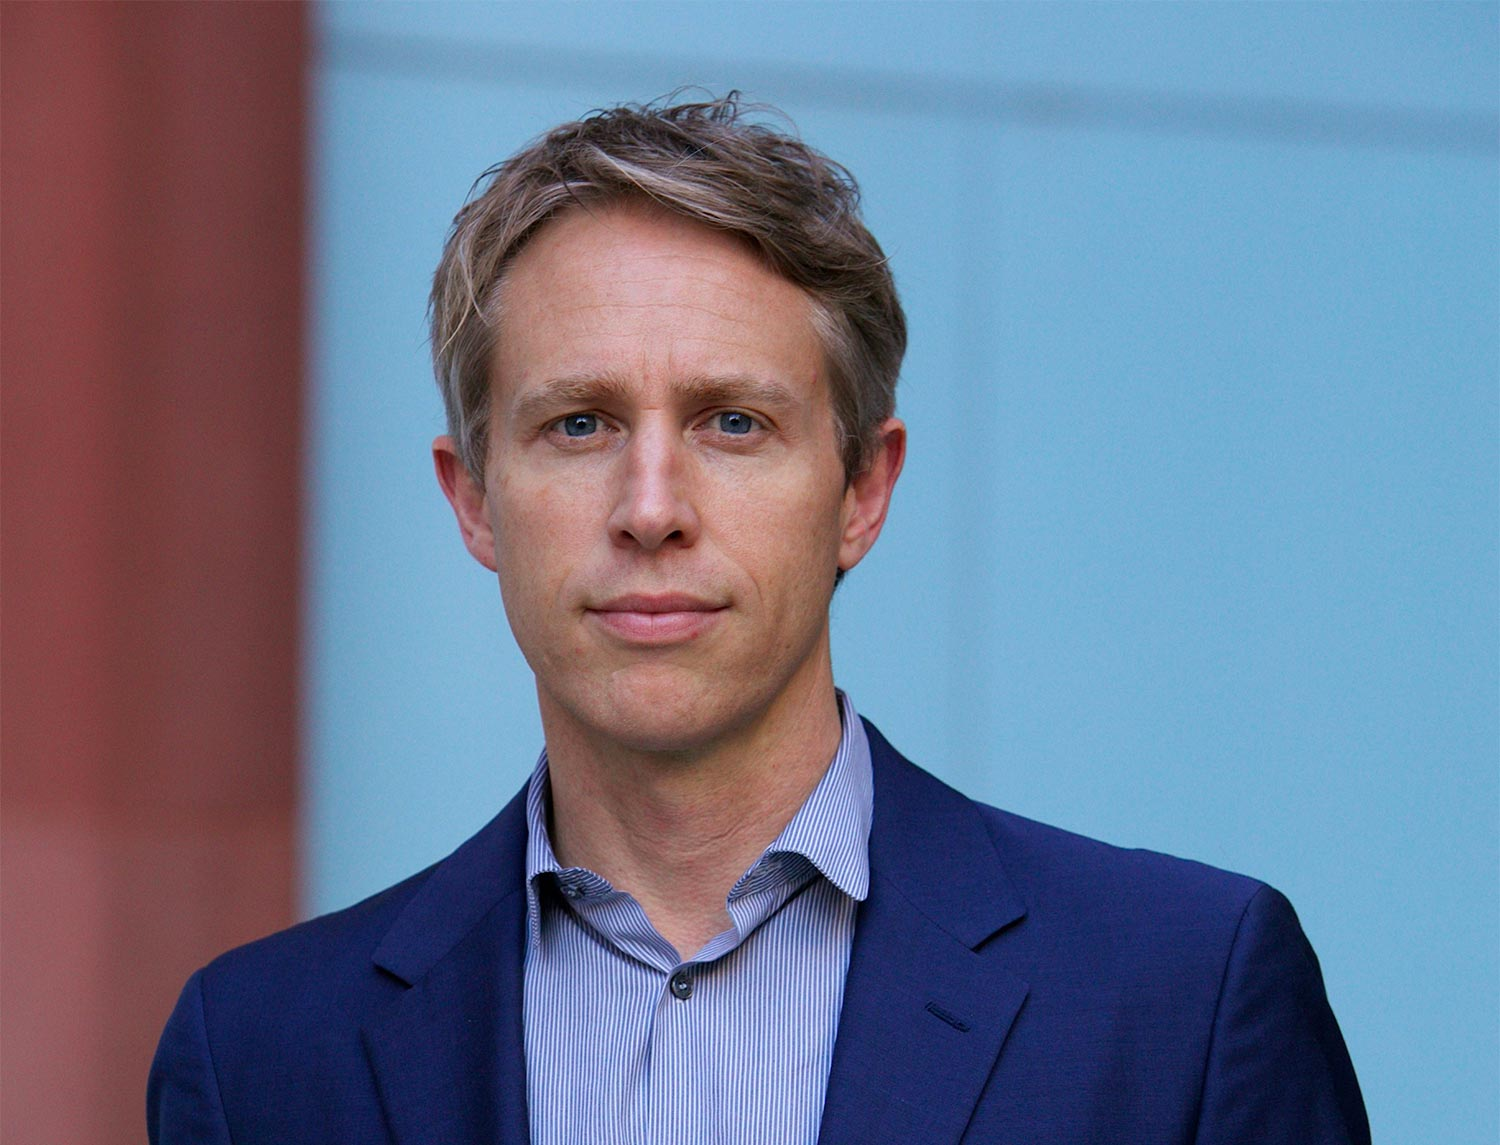 NYU professor to discuss disruptive innovation at T&T conference